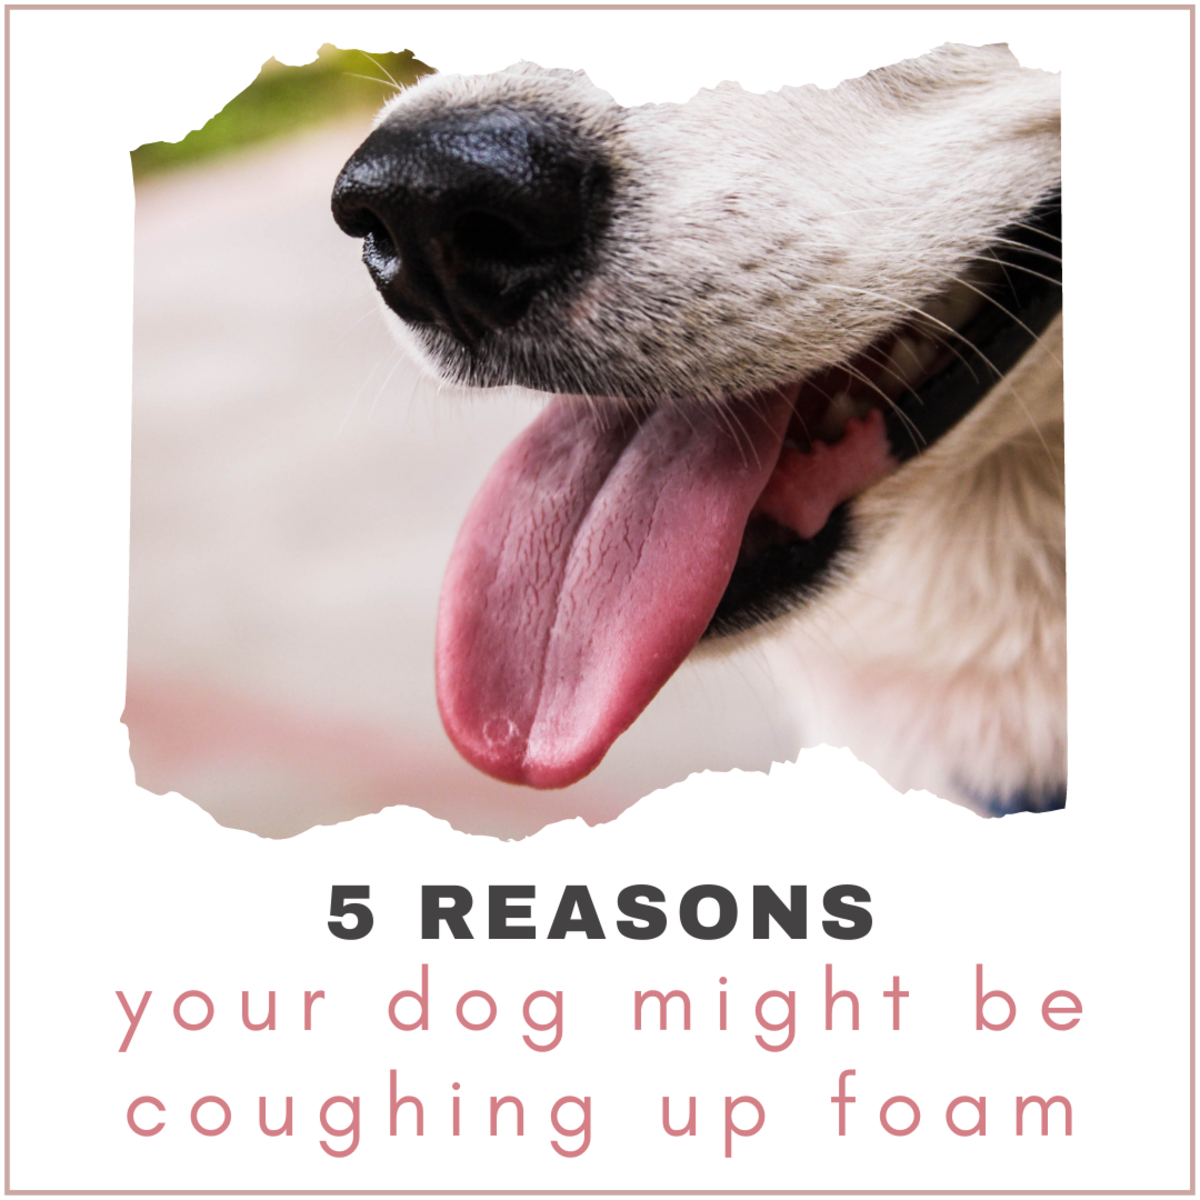 If your dog is coughing up foam, it may be an indication of a serious condition.